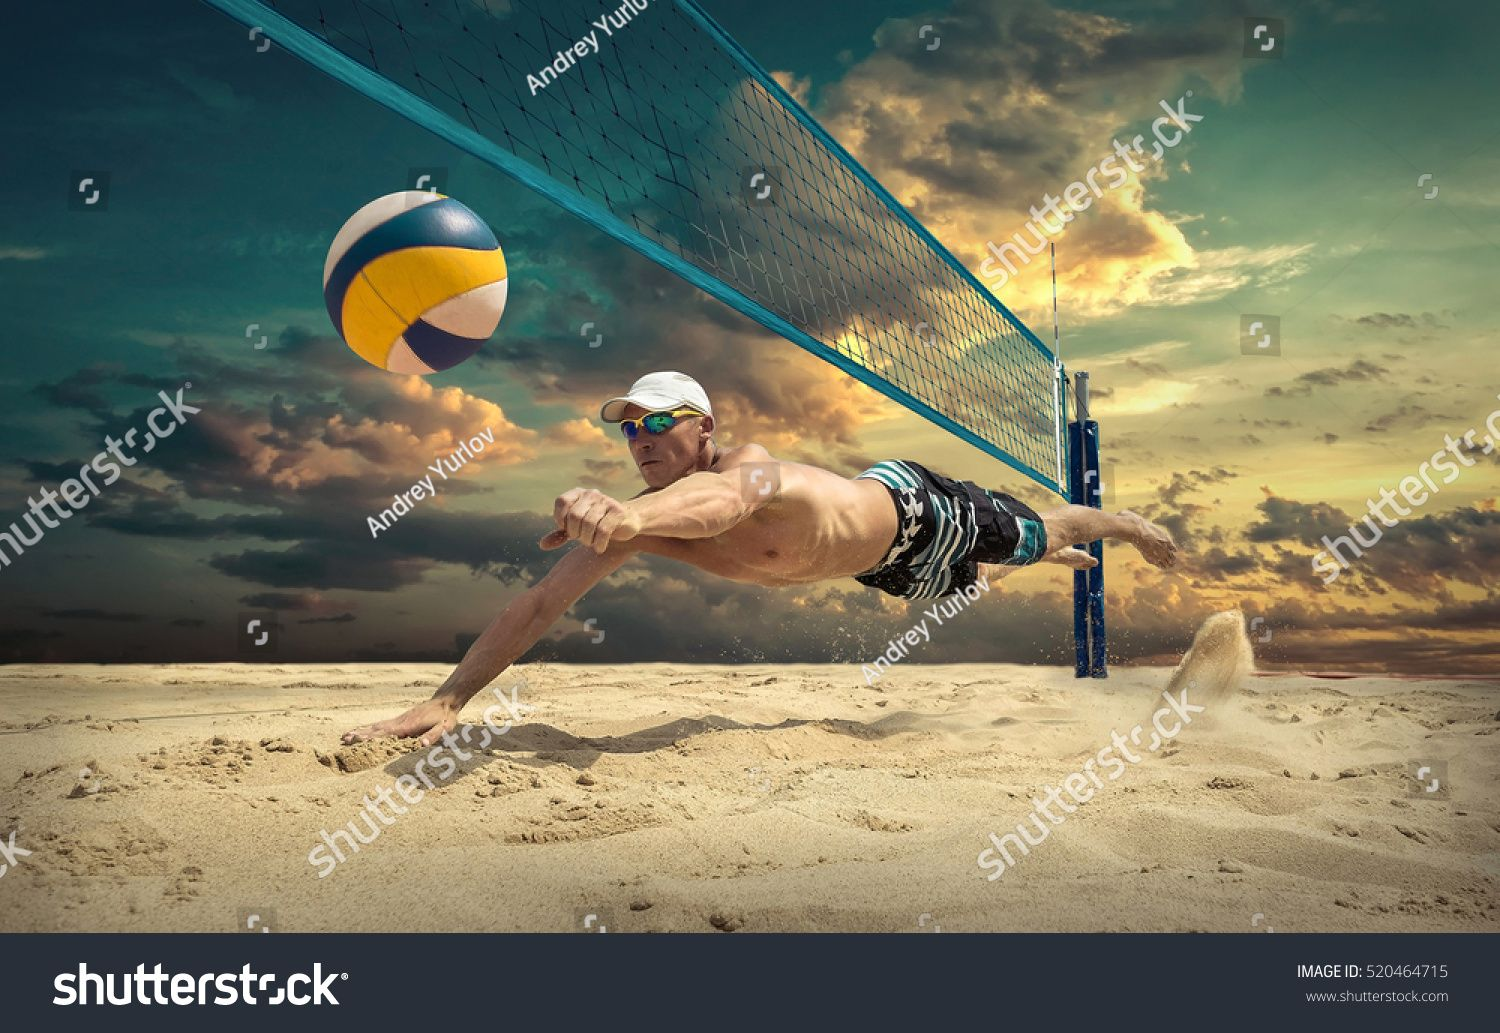 Beach Volleyball Player In Action At Sunny Day Under Blue Sky Ad Affiliate Player Action Beach Volleyball In 2020 Volleyball Players Beach Volleyball Beach